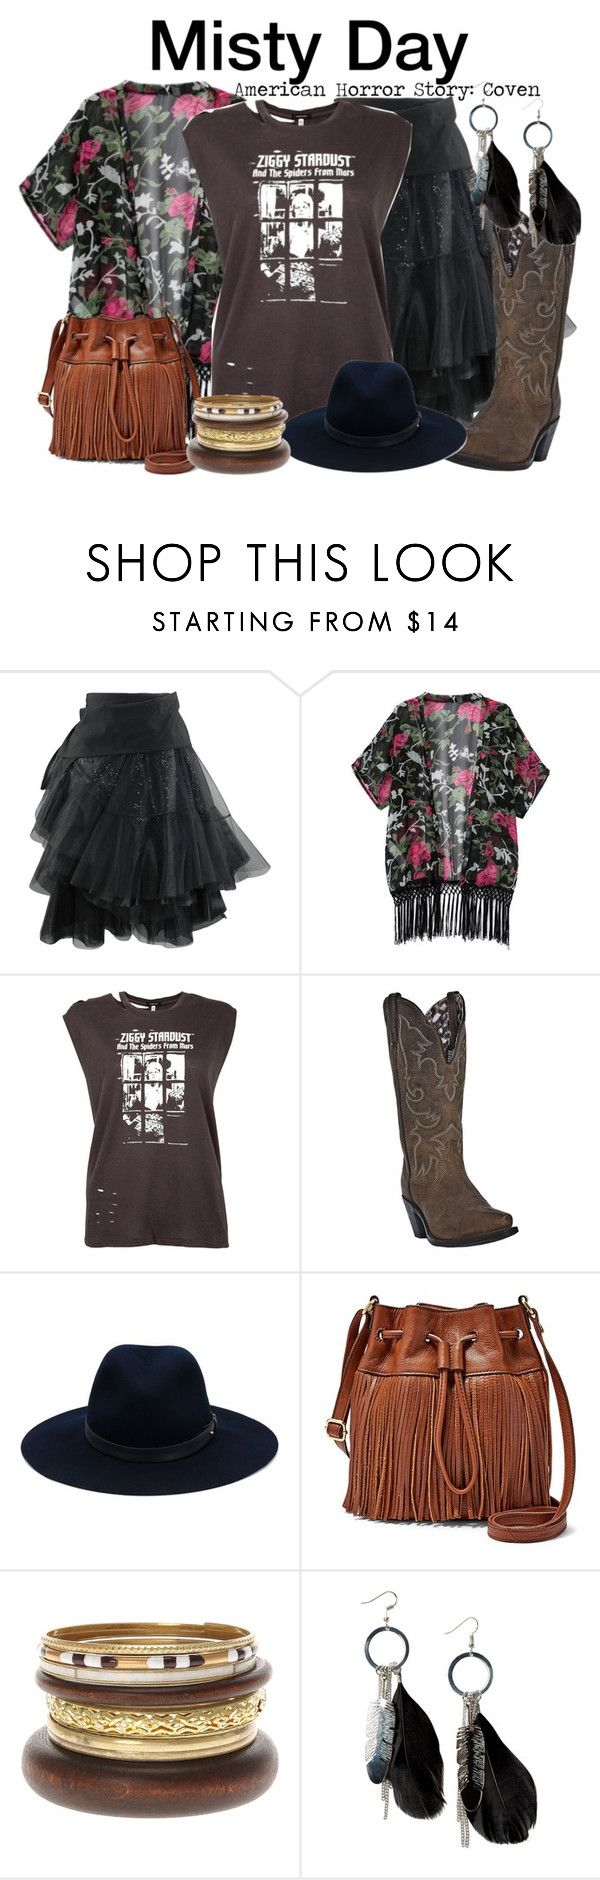 """""""Misty Day - American Horror Story: Coven"""" by nerd-ville ❤ liked on Polyvore featuring R13, Dan Post, rag & bone, FOSSIL, MANGO, women's clothing, women, female, woman and misses"""